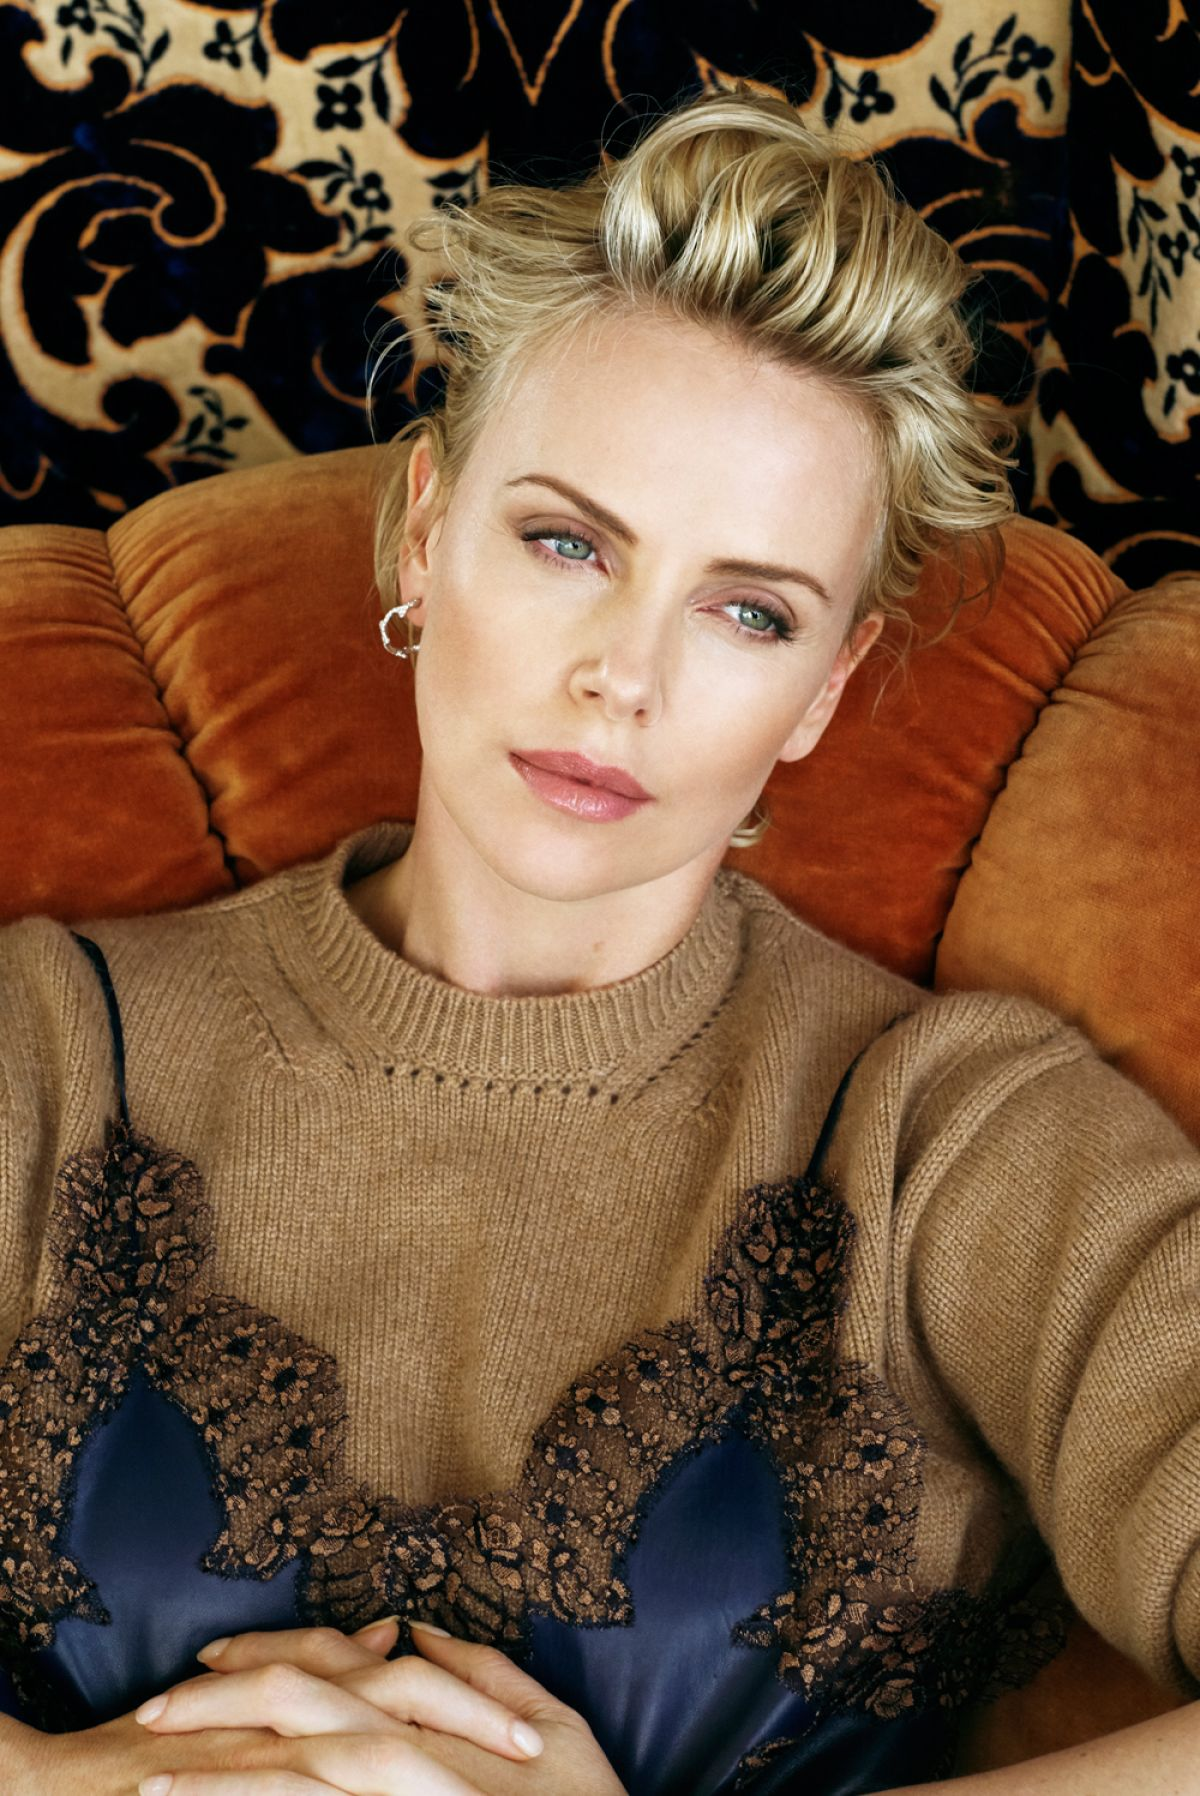 Charlize Theron In Versace For British Vogue: CHARLIZE THERON By Collier Schorr For V Magazine, #101